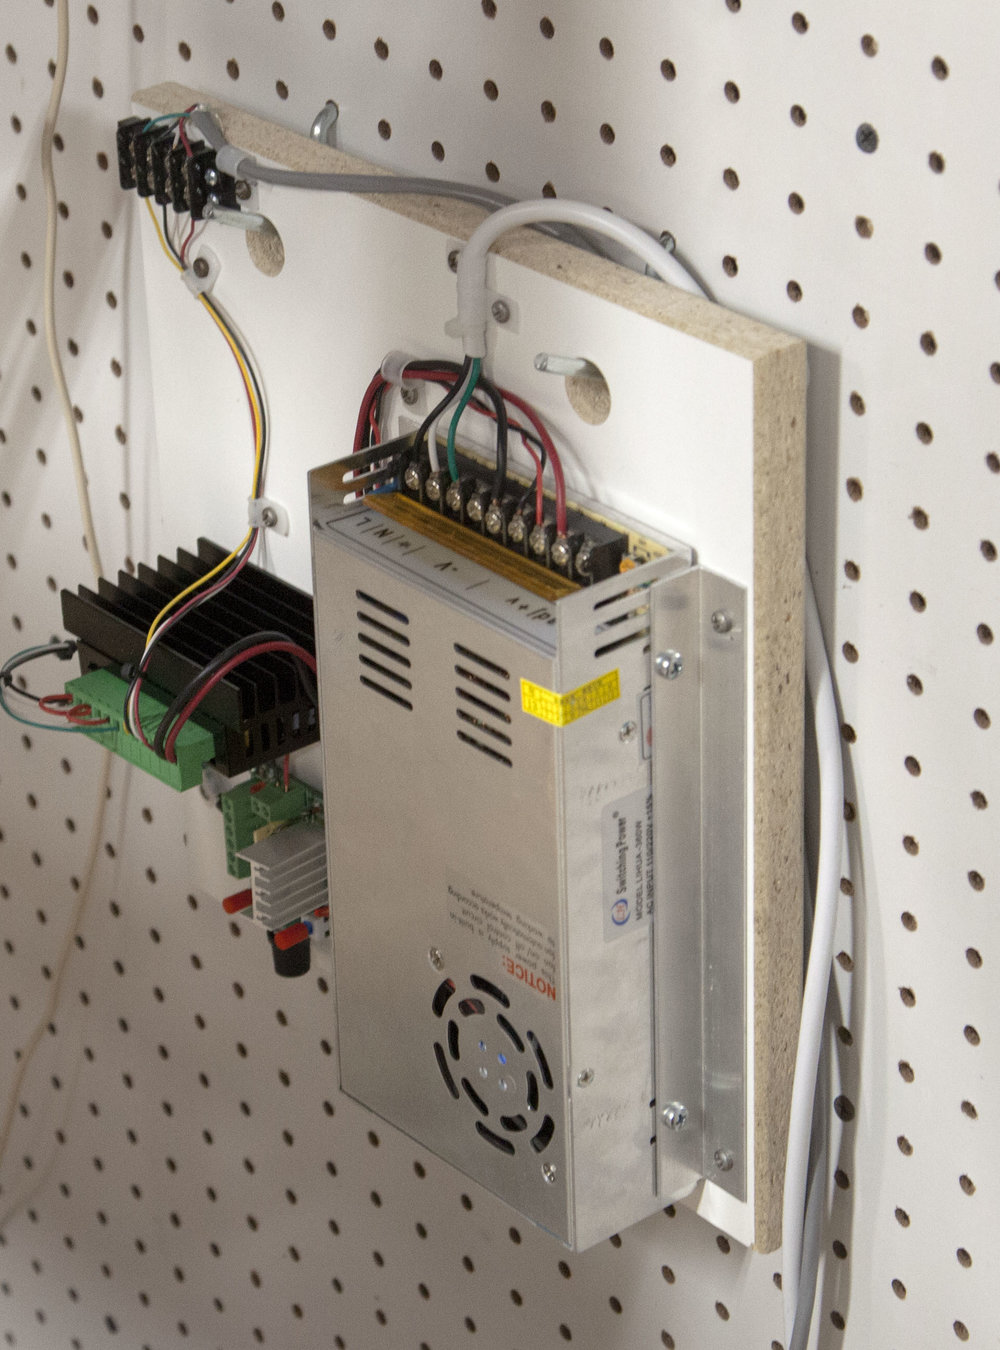 Building A Stepper Motor Tester Kronos Robotics Generator Project Here Is The Hanging On Pegboard Wall